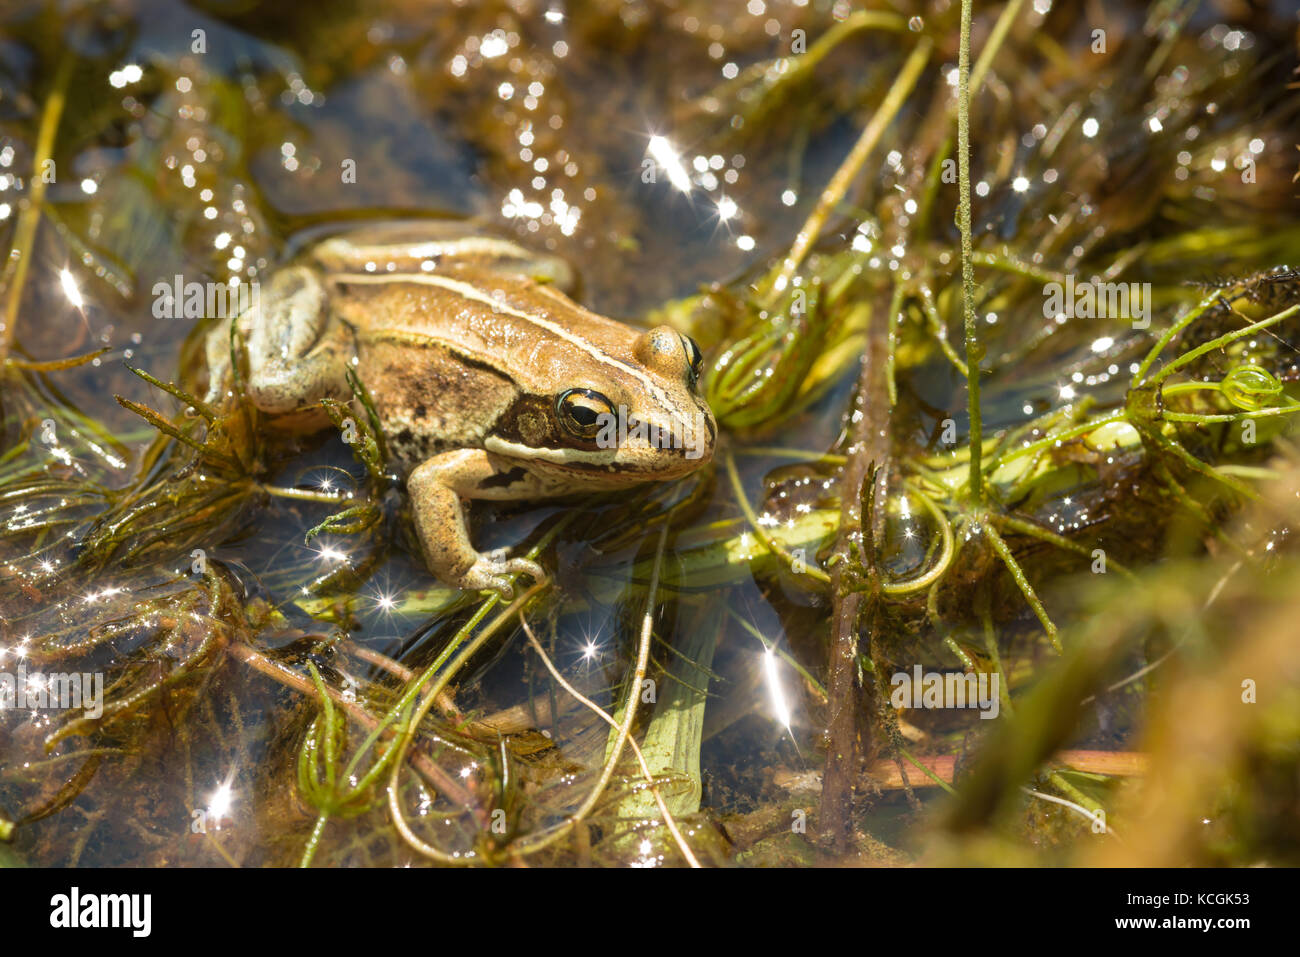 A wood frog, Lithobates sylvaticus, sitting on top of aquatic macrophytes in a small pond in central Alberta - Stock Image